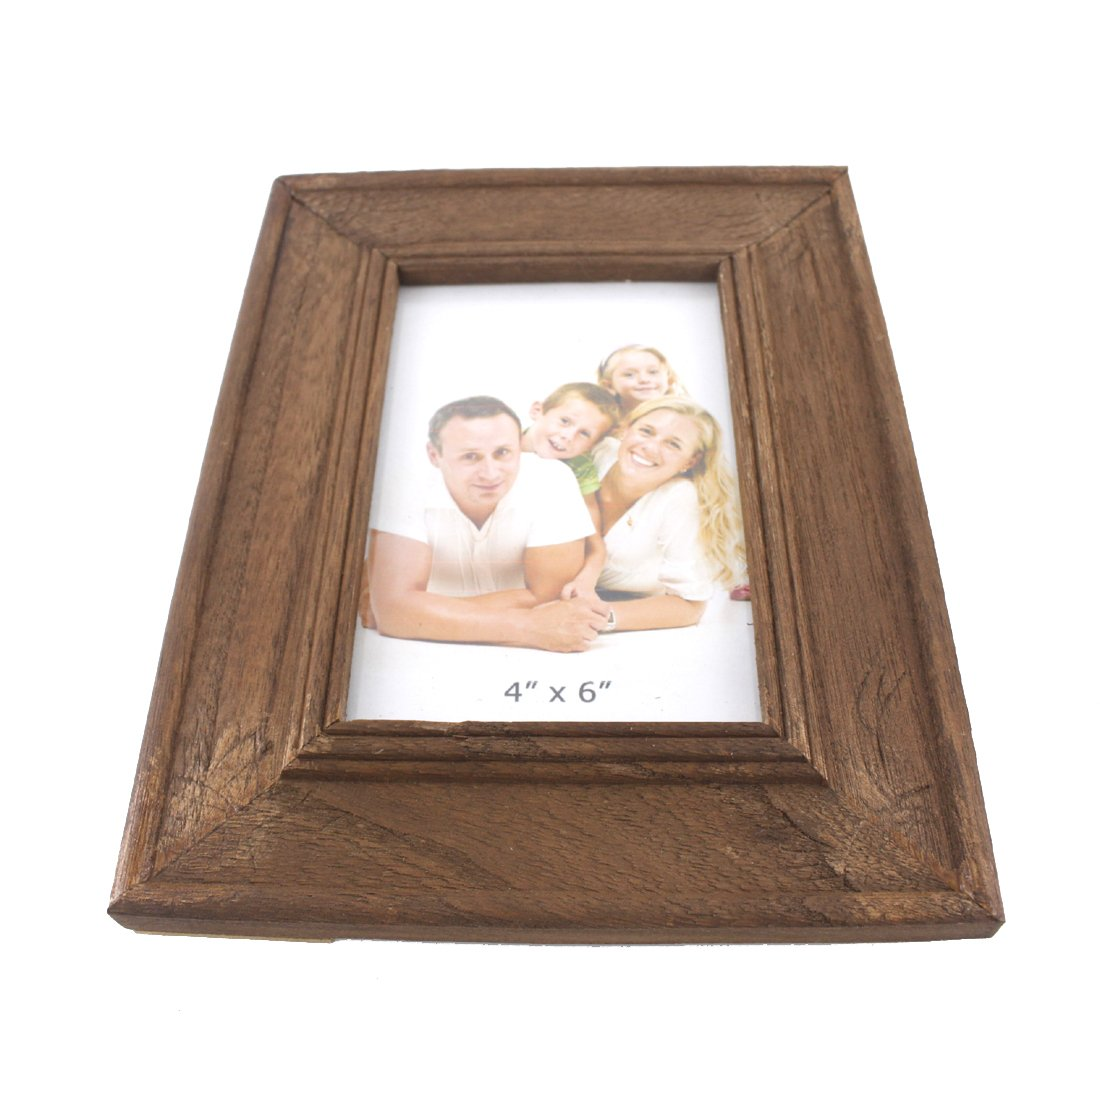 4x6 Inches Simple Rectangular Wood Desktop Family Picture Photo Frame with Glass Front Blue and White Homesweeter1900